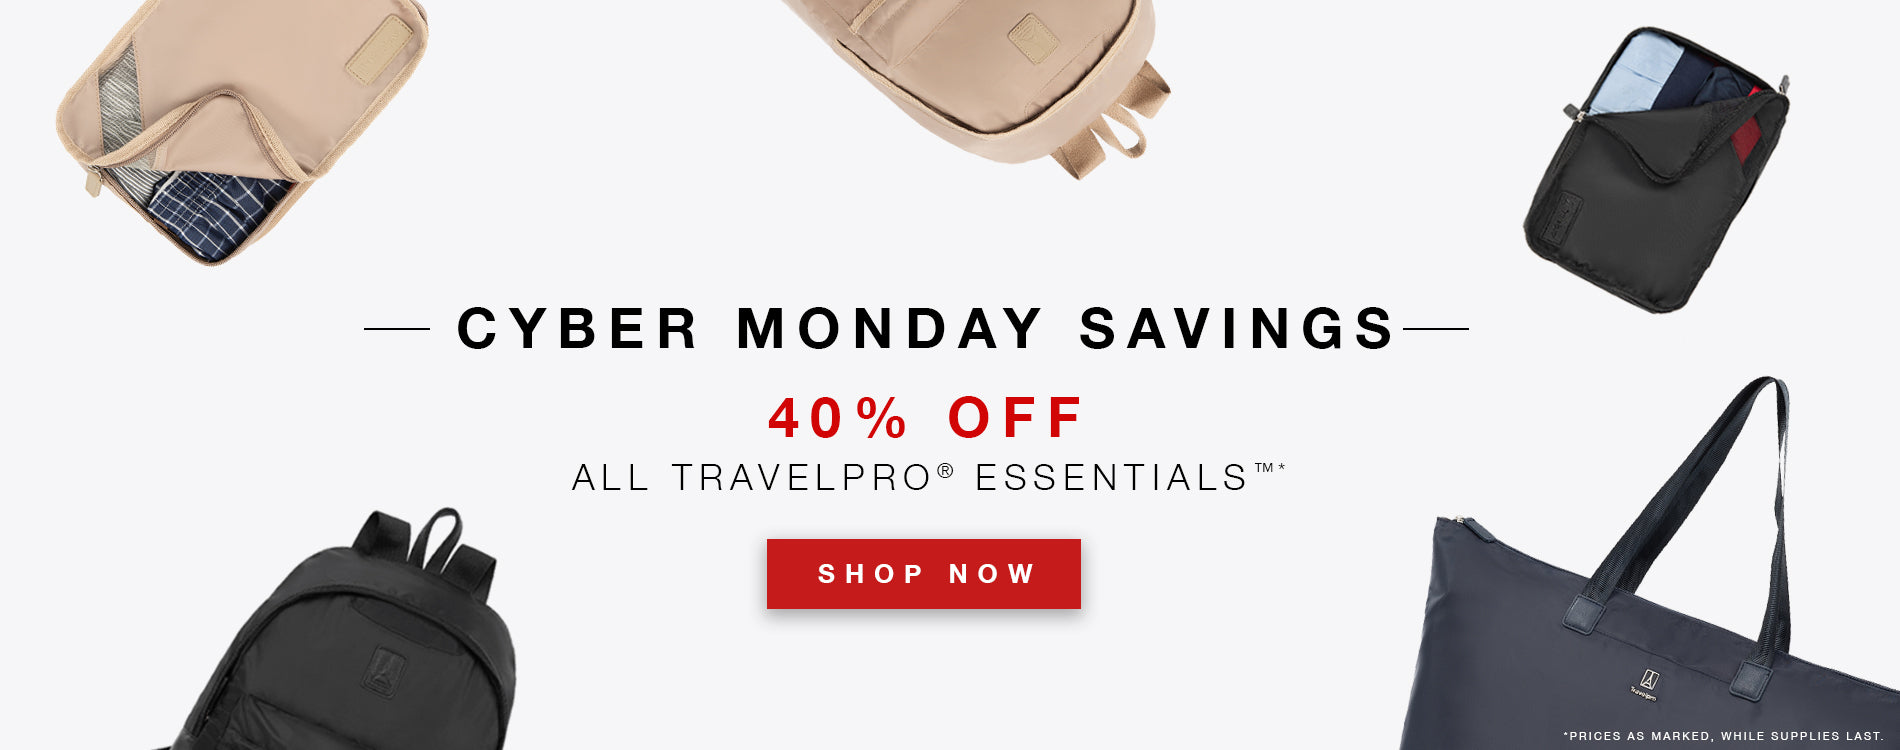 Cyber Monday Savings: 40% Off Travelpro Essentials Collection